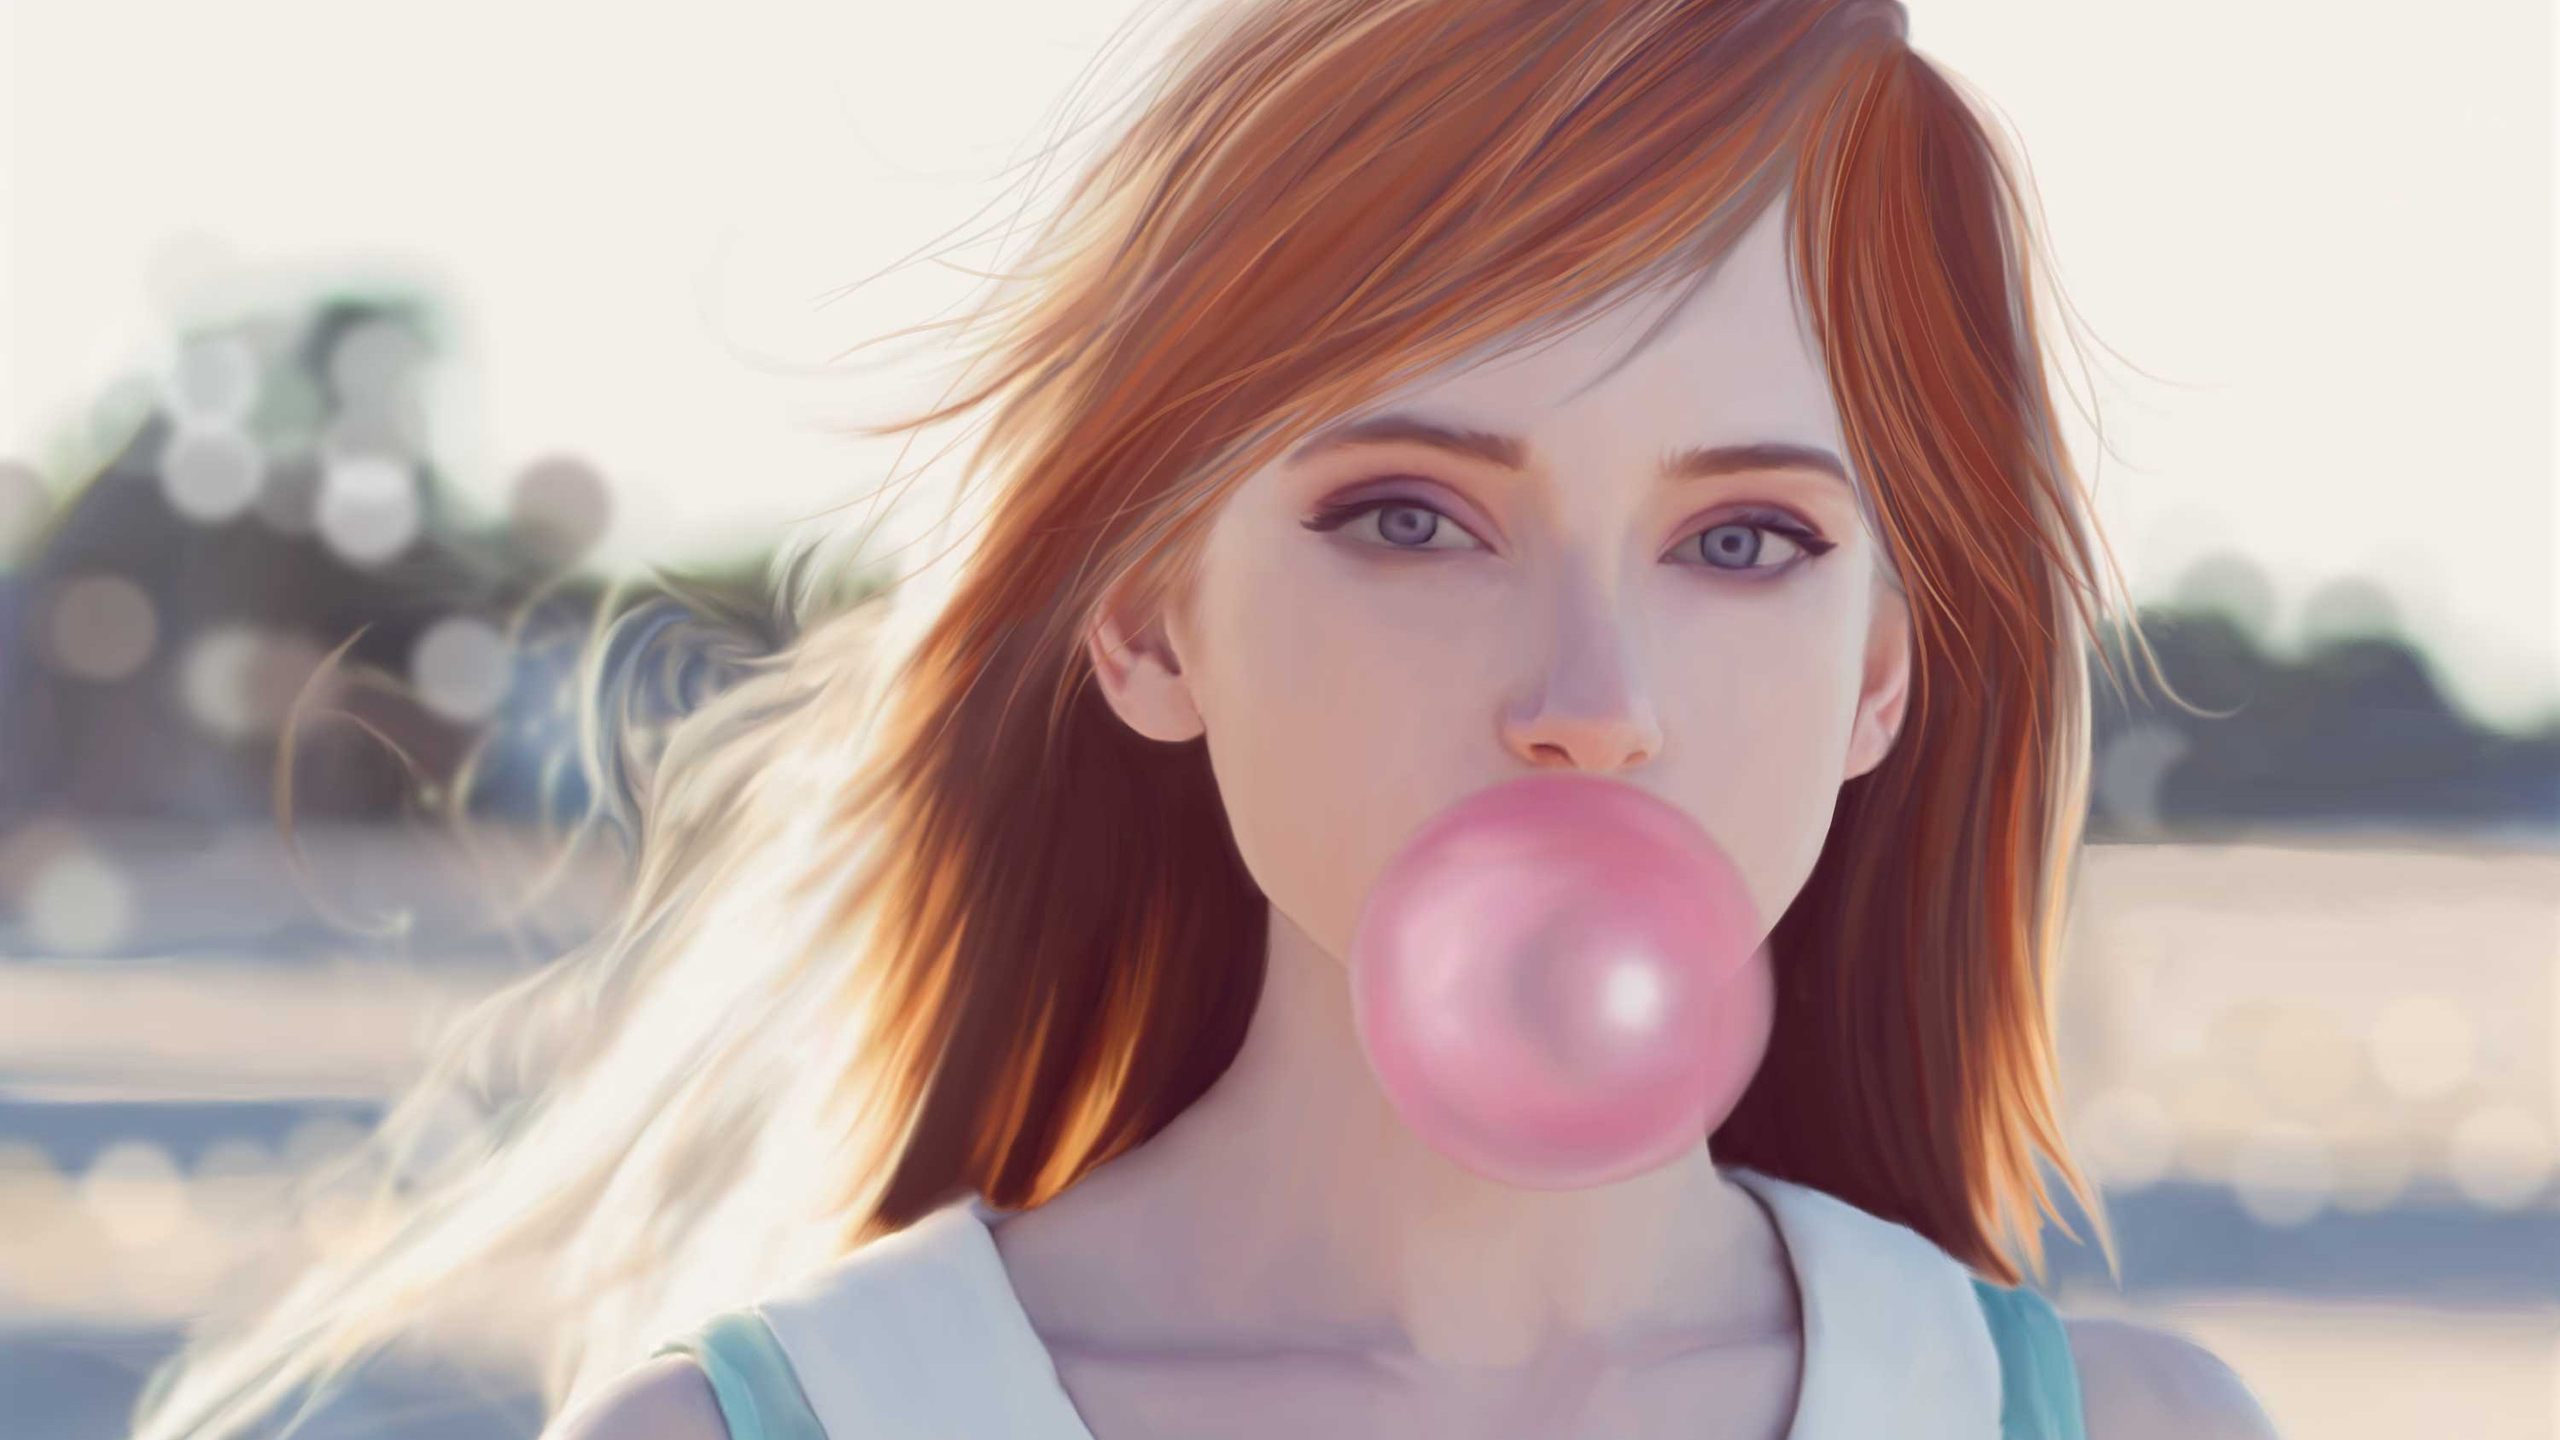 girl-blowing-bubble-gum-dk.jpg